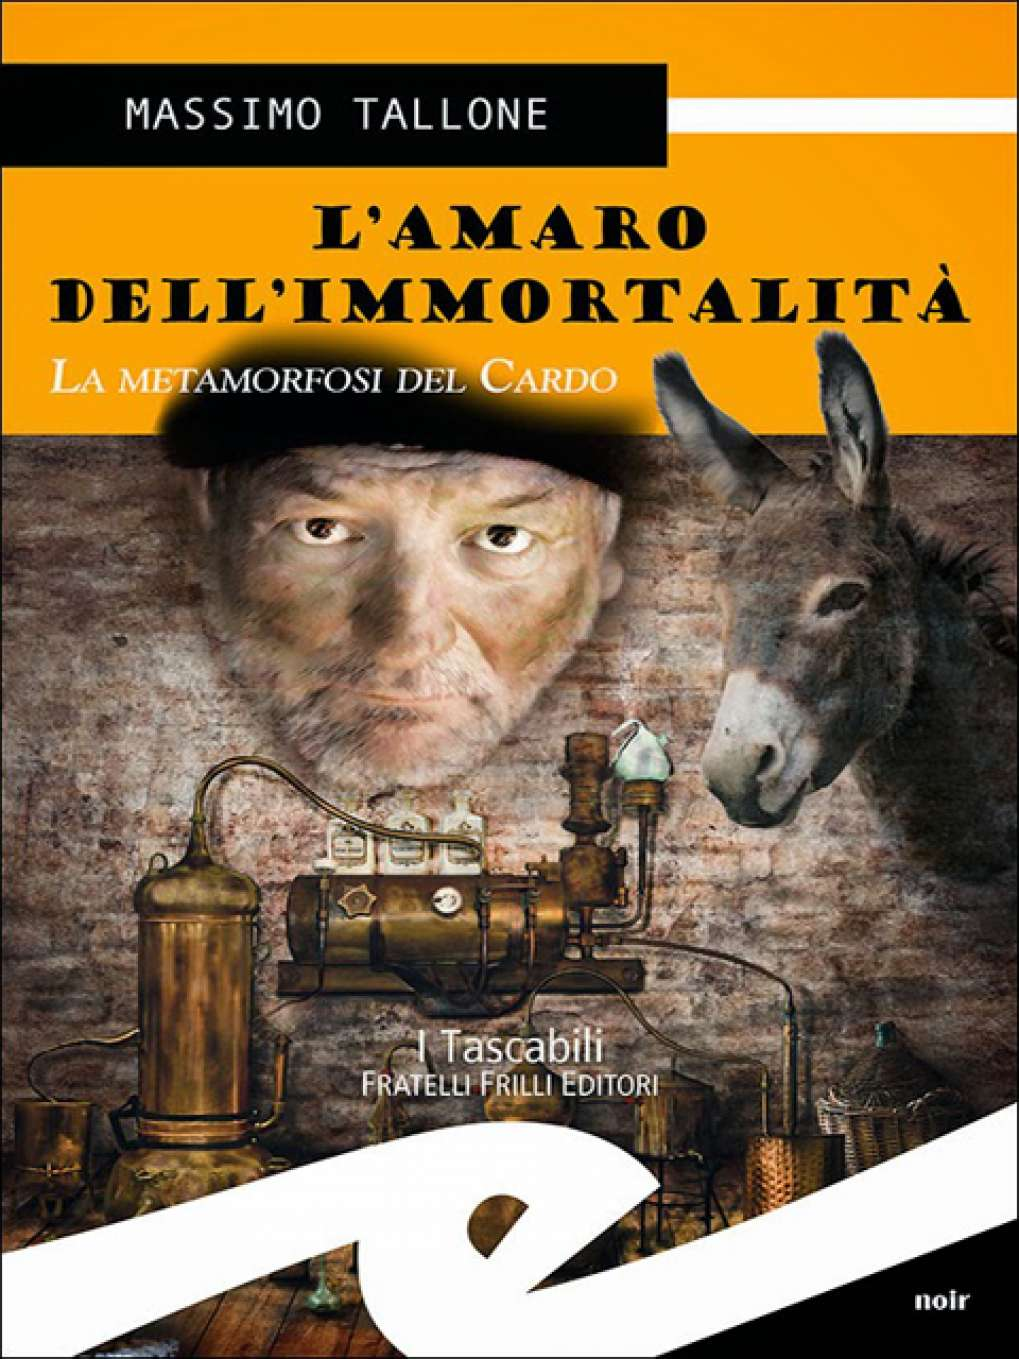 L'amaro dell'immortalità